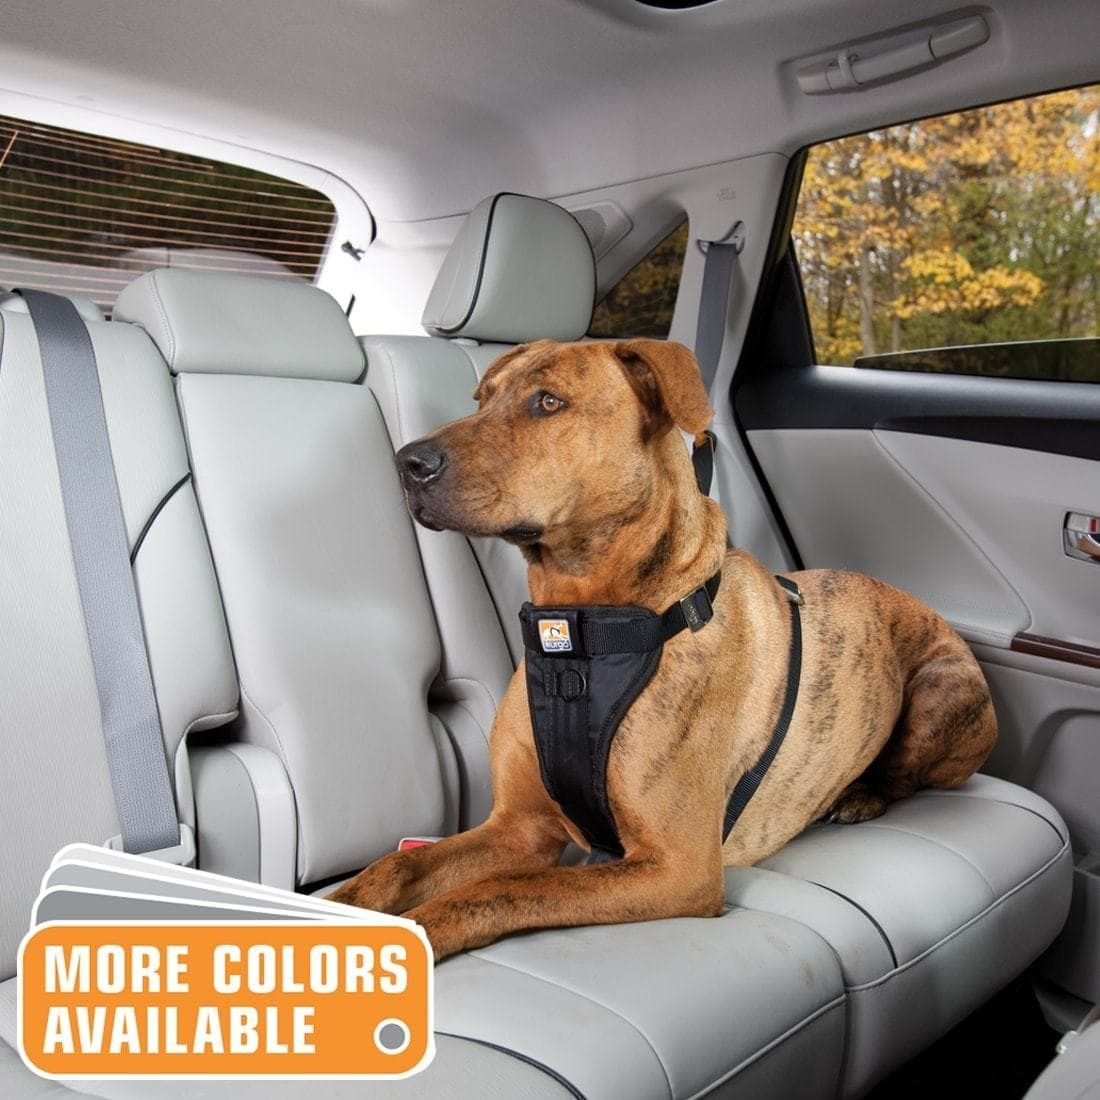 Buy Ezydog Drive Dog Car Harness Small At Chewy Com Free